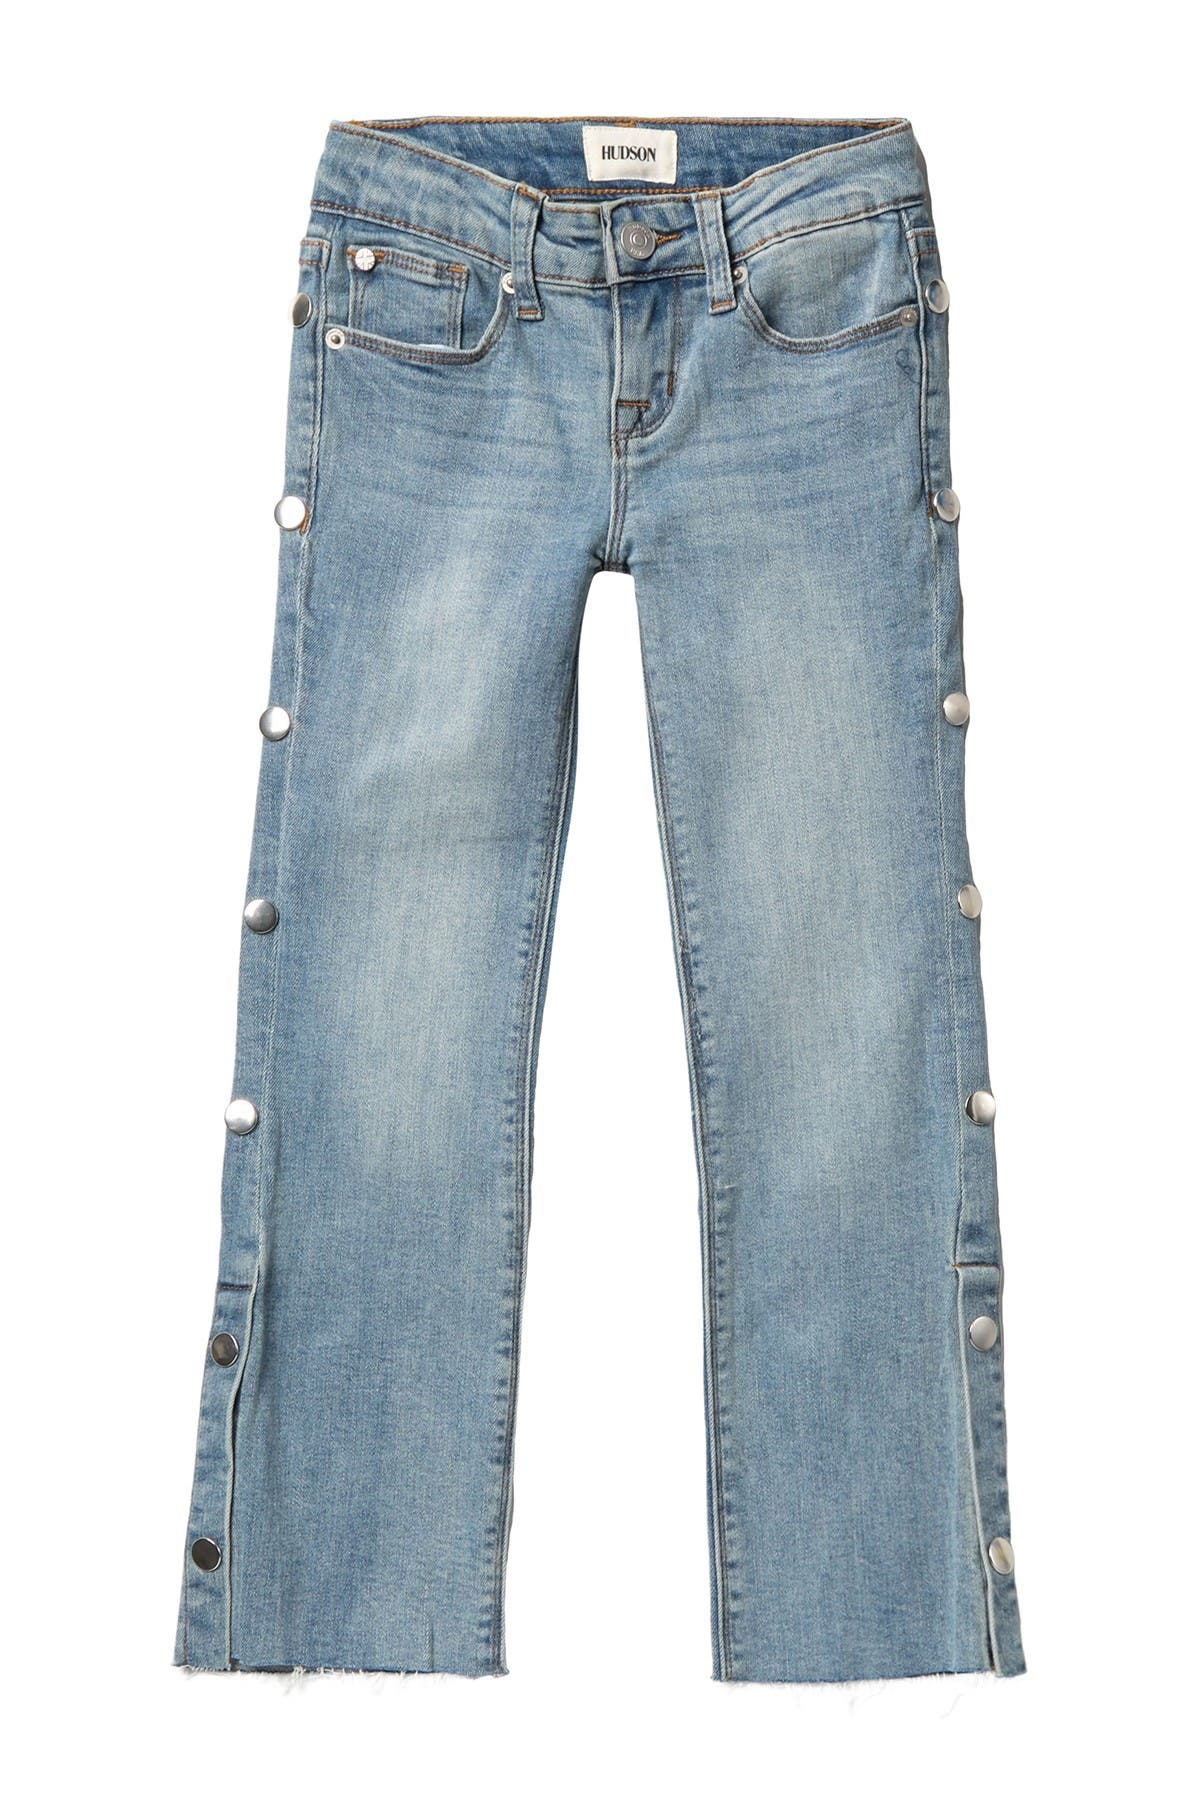 Image of HUDSON Jeans Snappy Crop Fray Hem Straight Leg Jeans